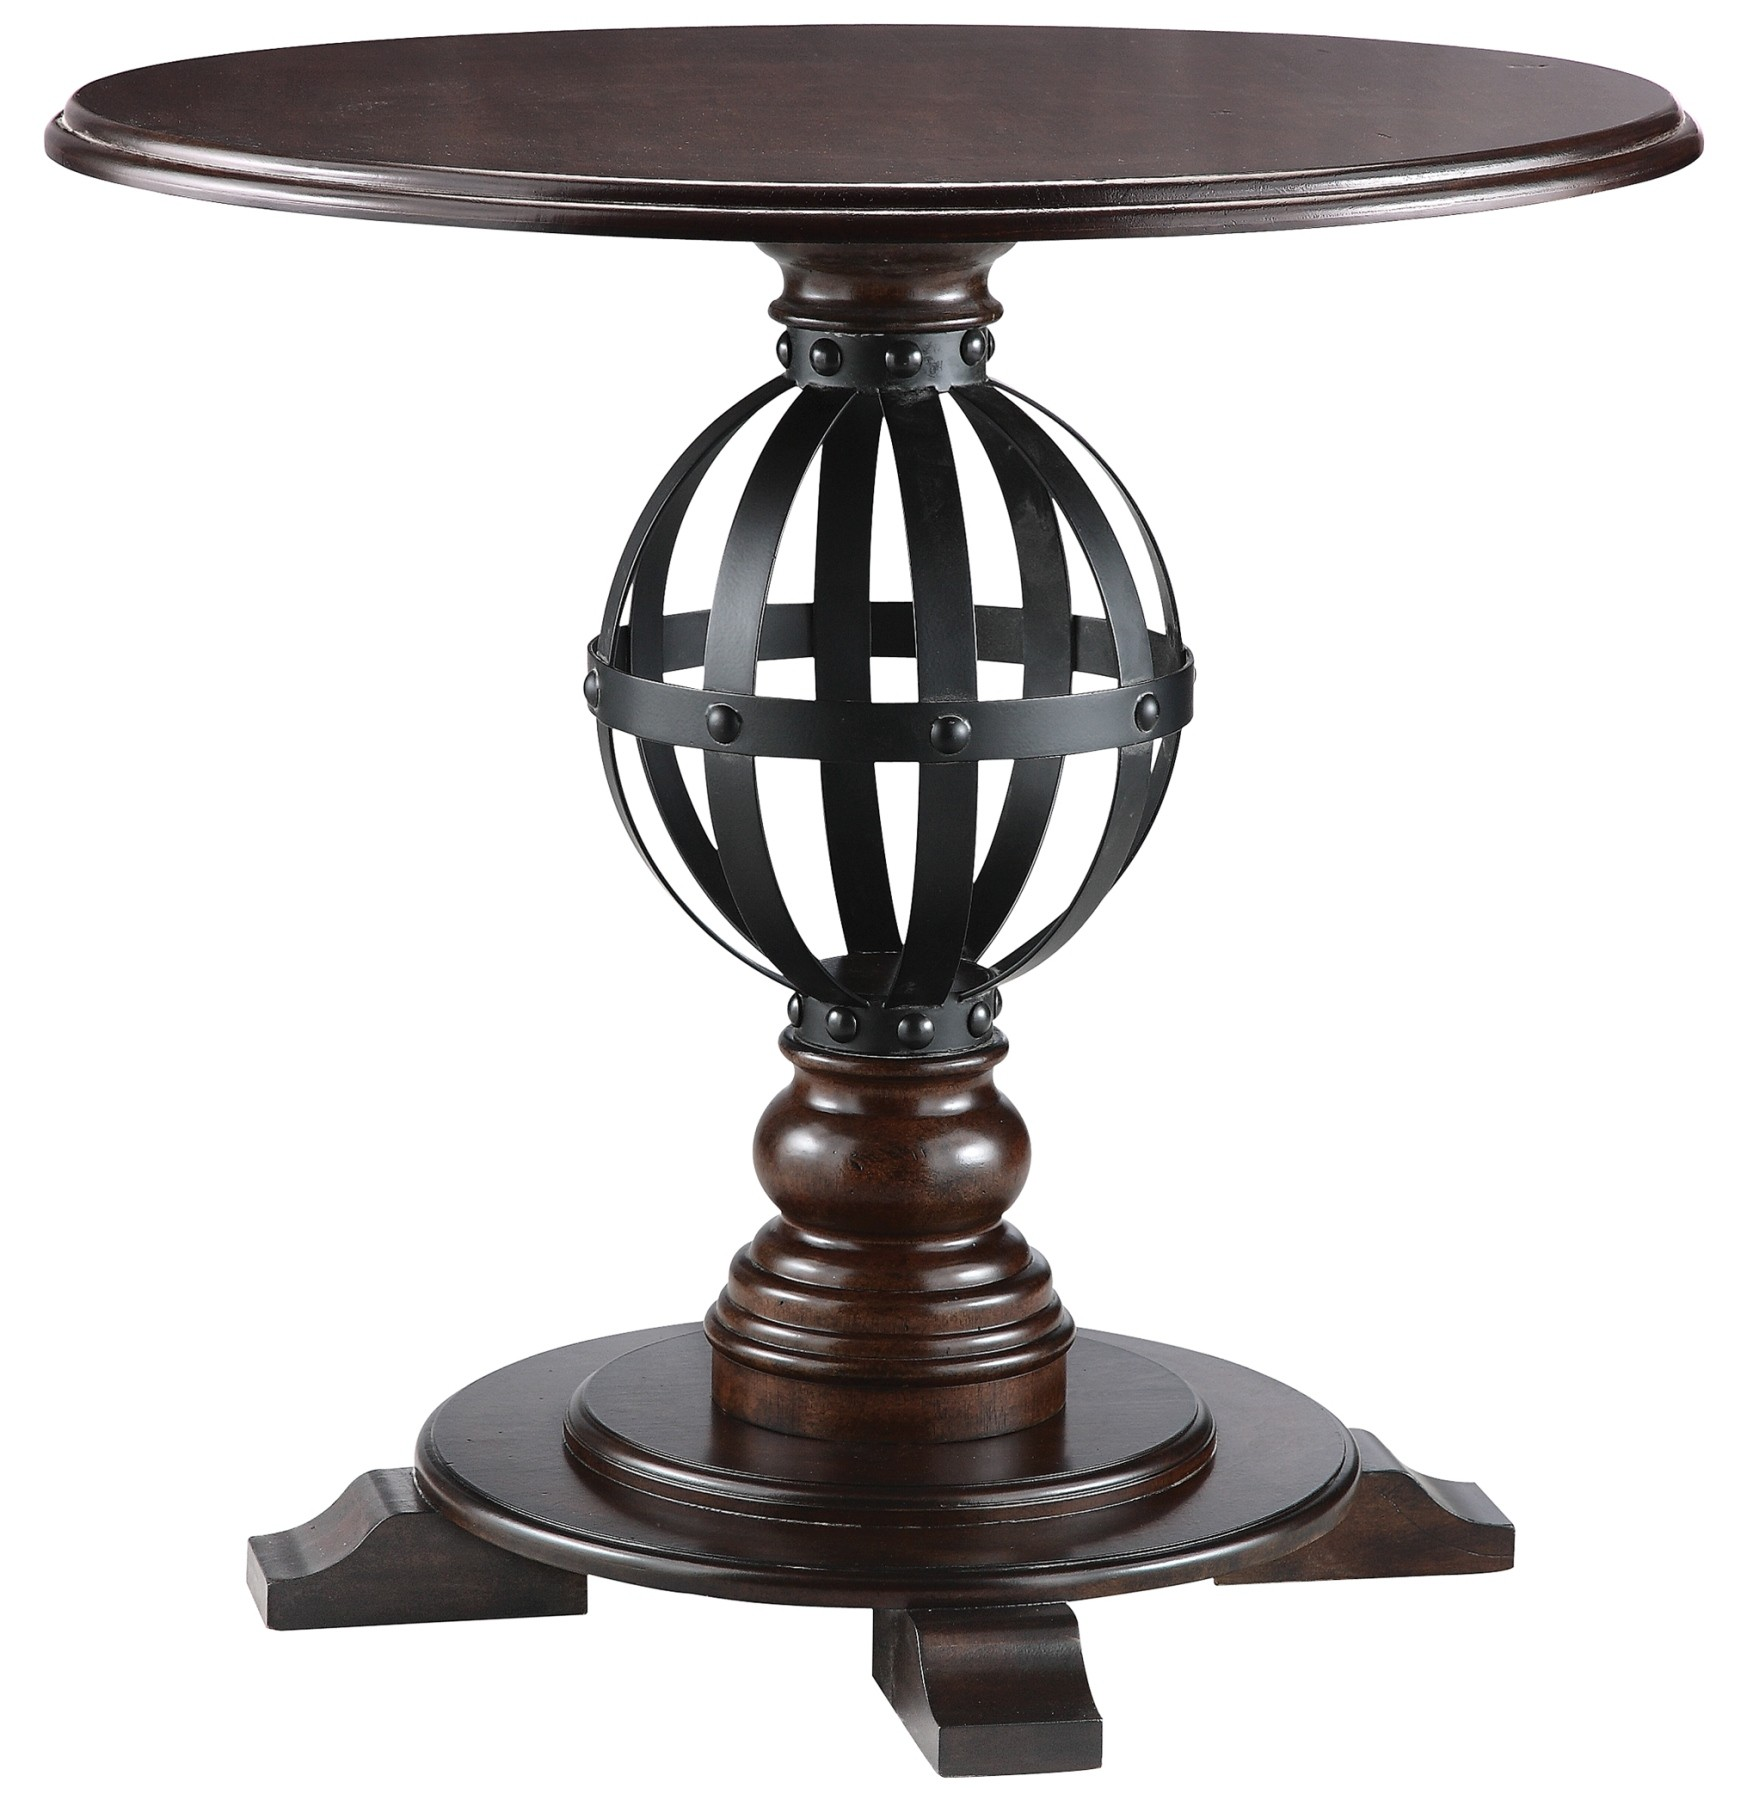 round accent table with metal sphere stein world glynn bunnings outdoor couch wrought iron patio ultra modern lamps folding chairs tablette bar set college dorm accessories fold